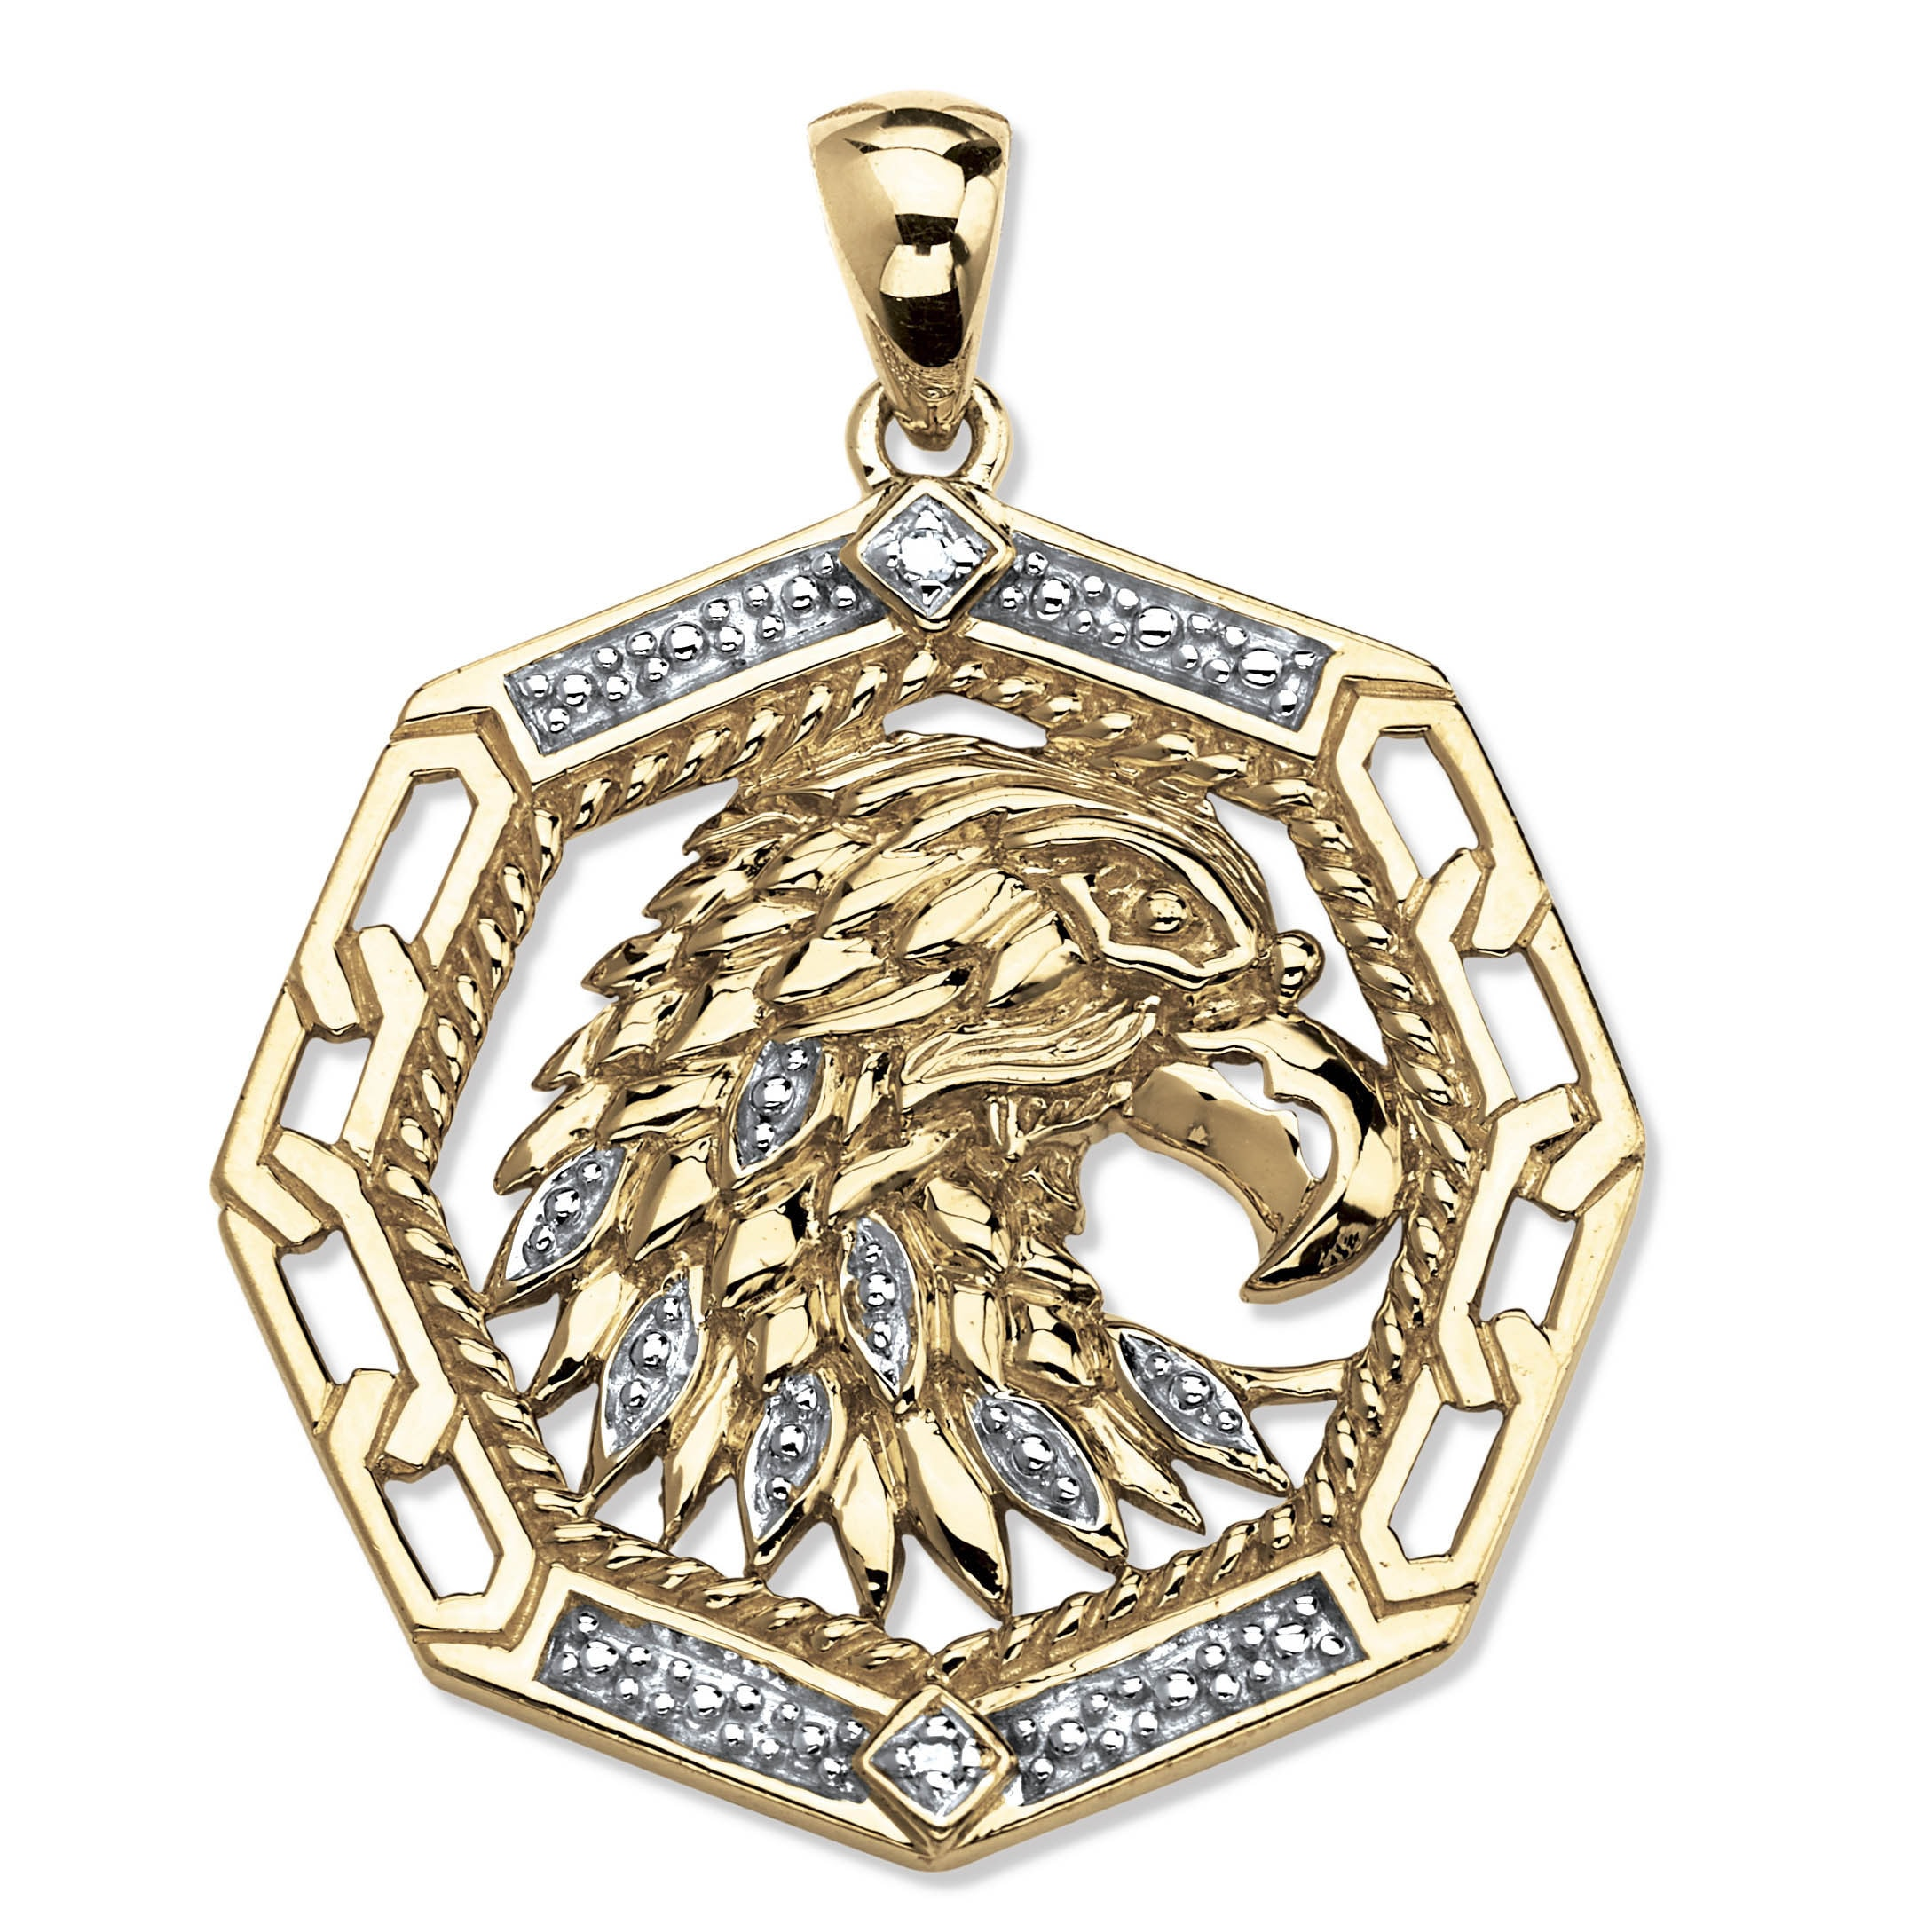 silver eagle necklace blackjack pendant tone gold pin